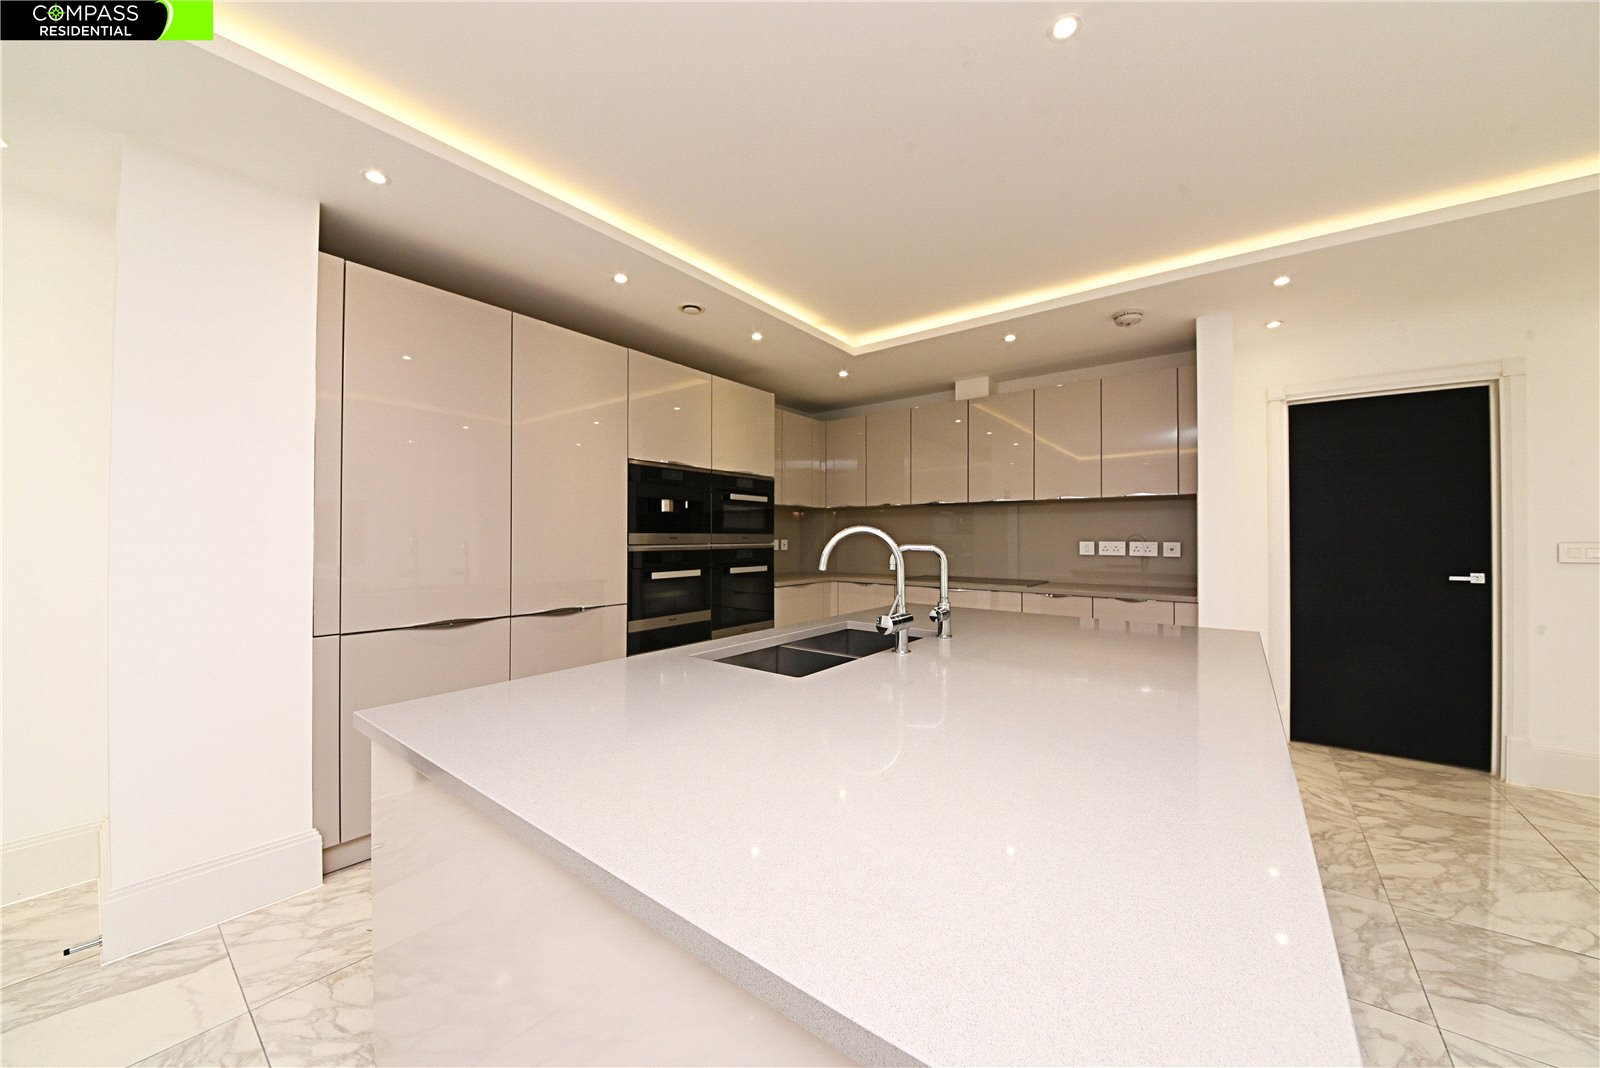 5 bed house to rent in Golders Green, NW11 7JH, NW11